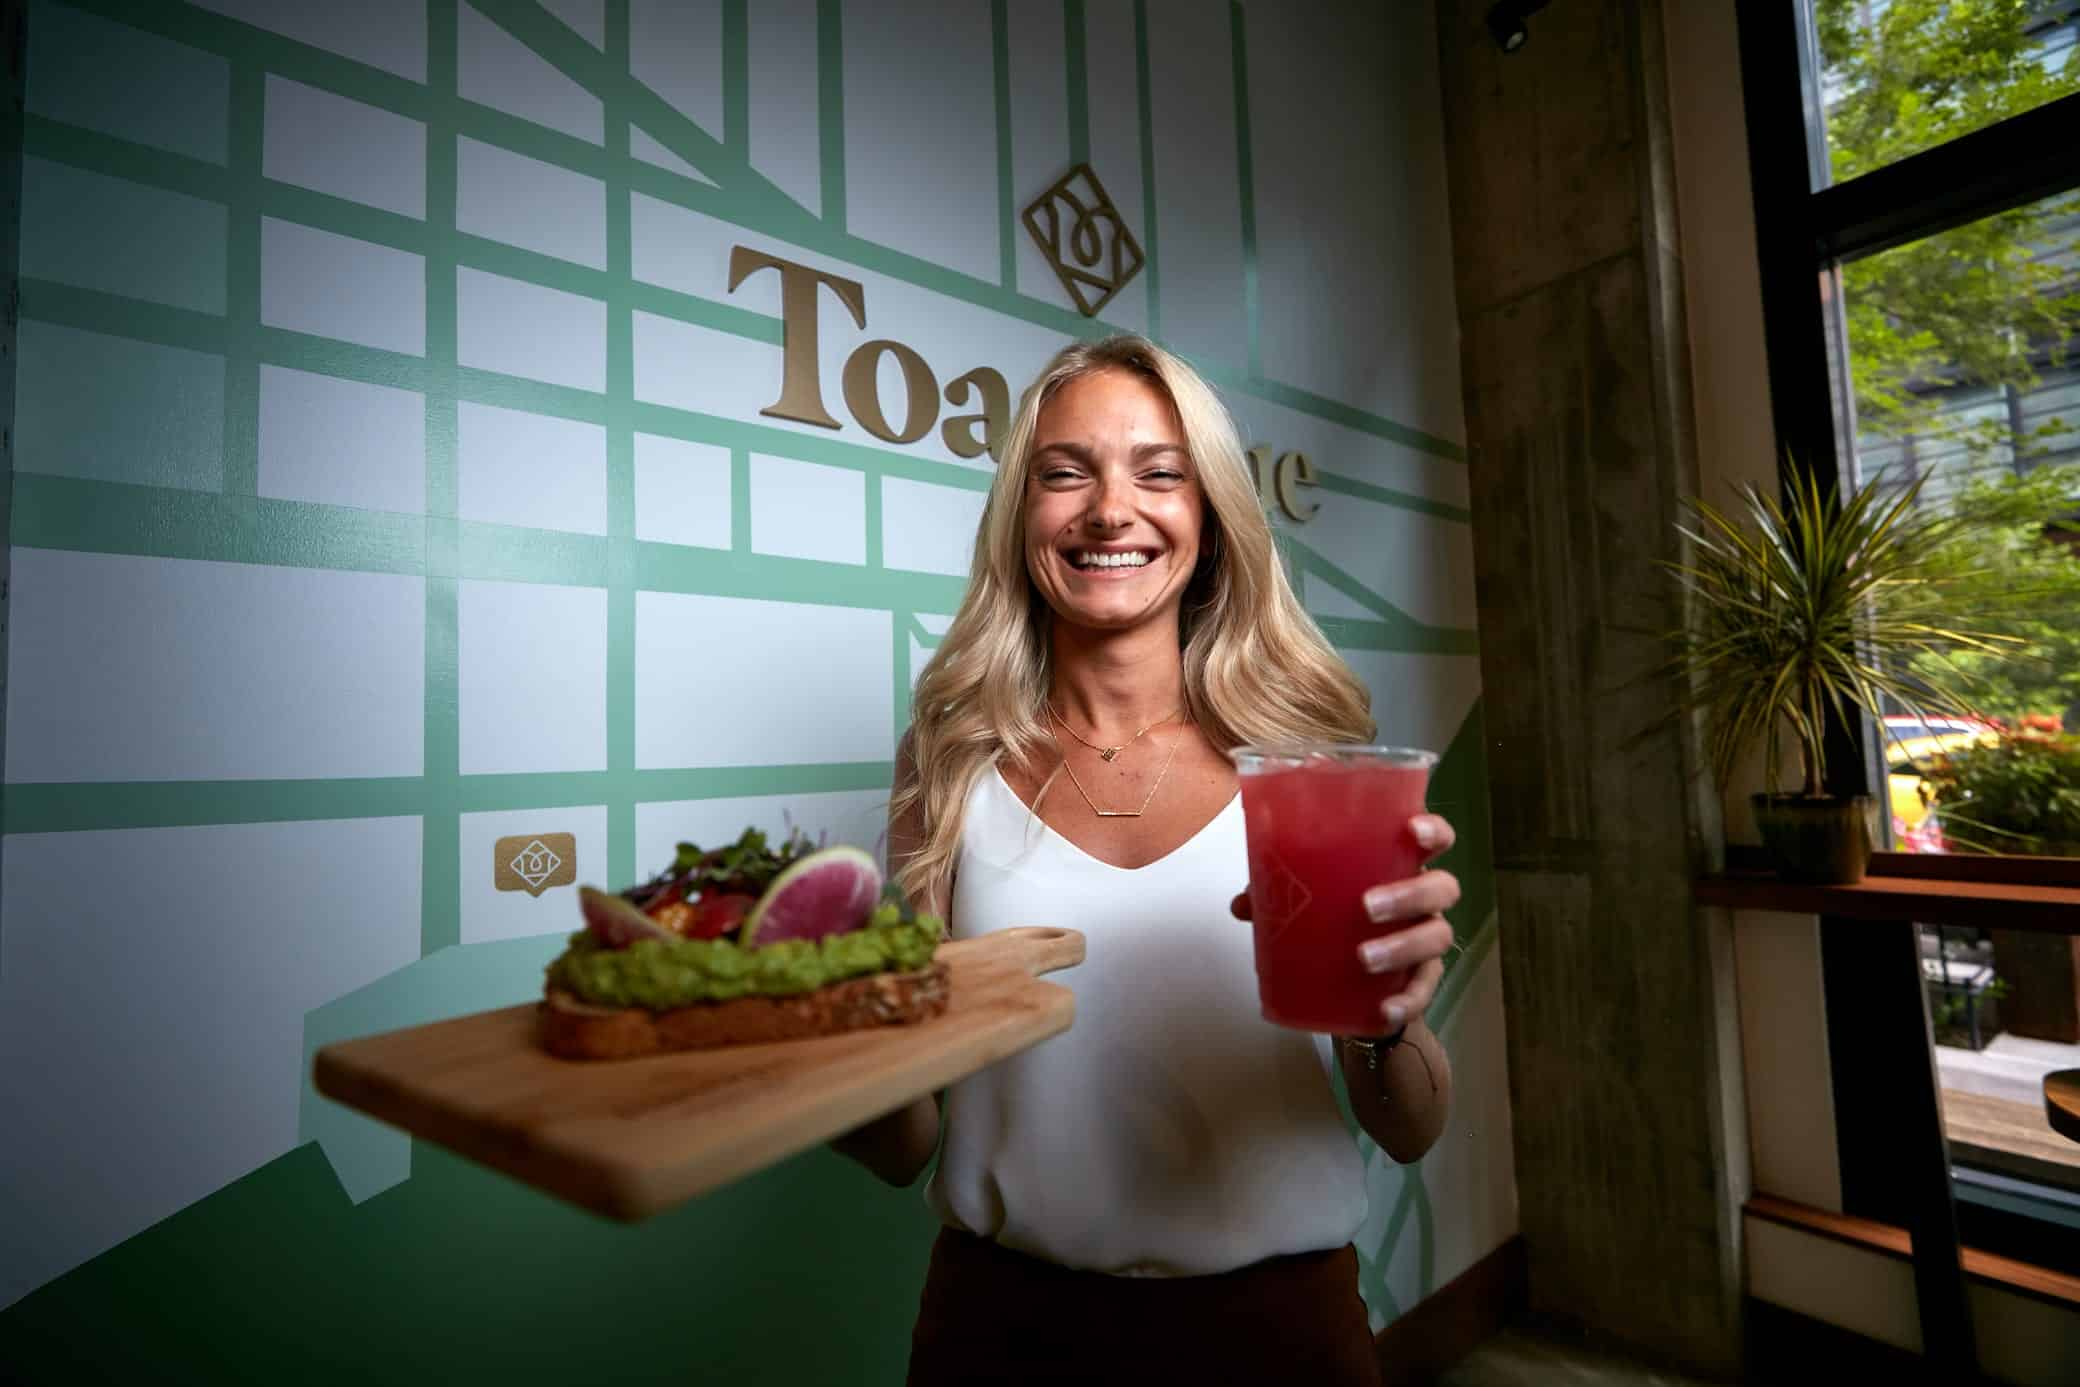 open a healthy food franchise with Toastique in Las Vegas